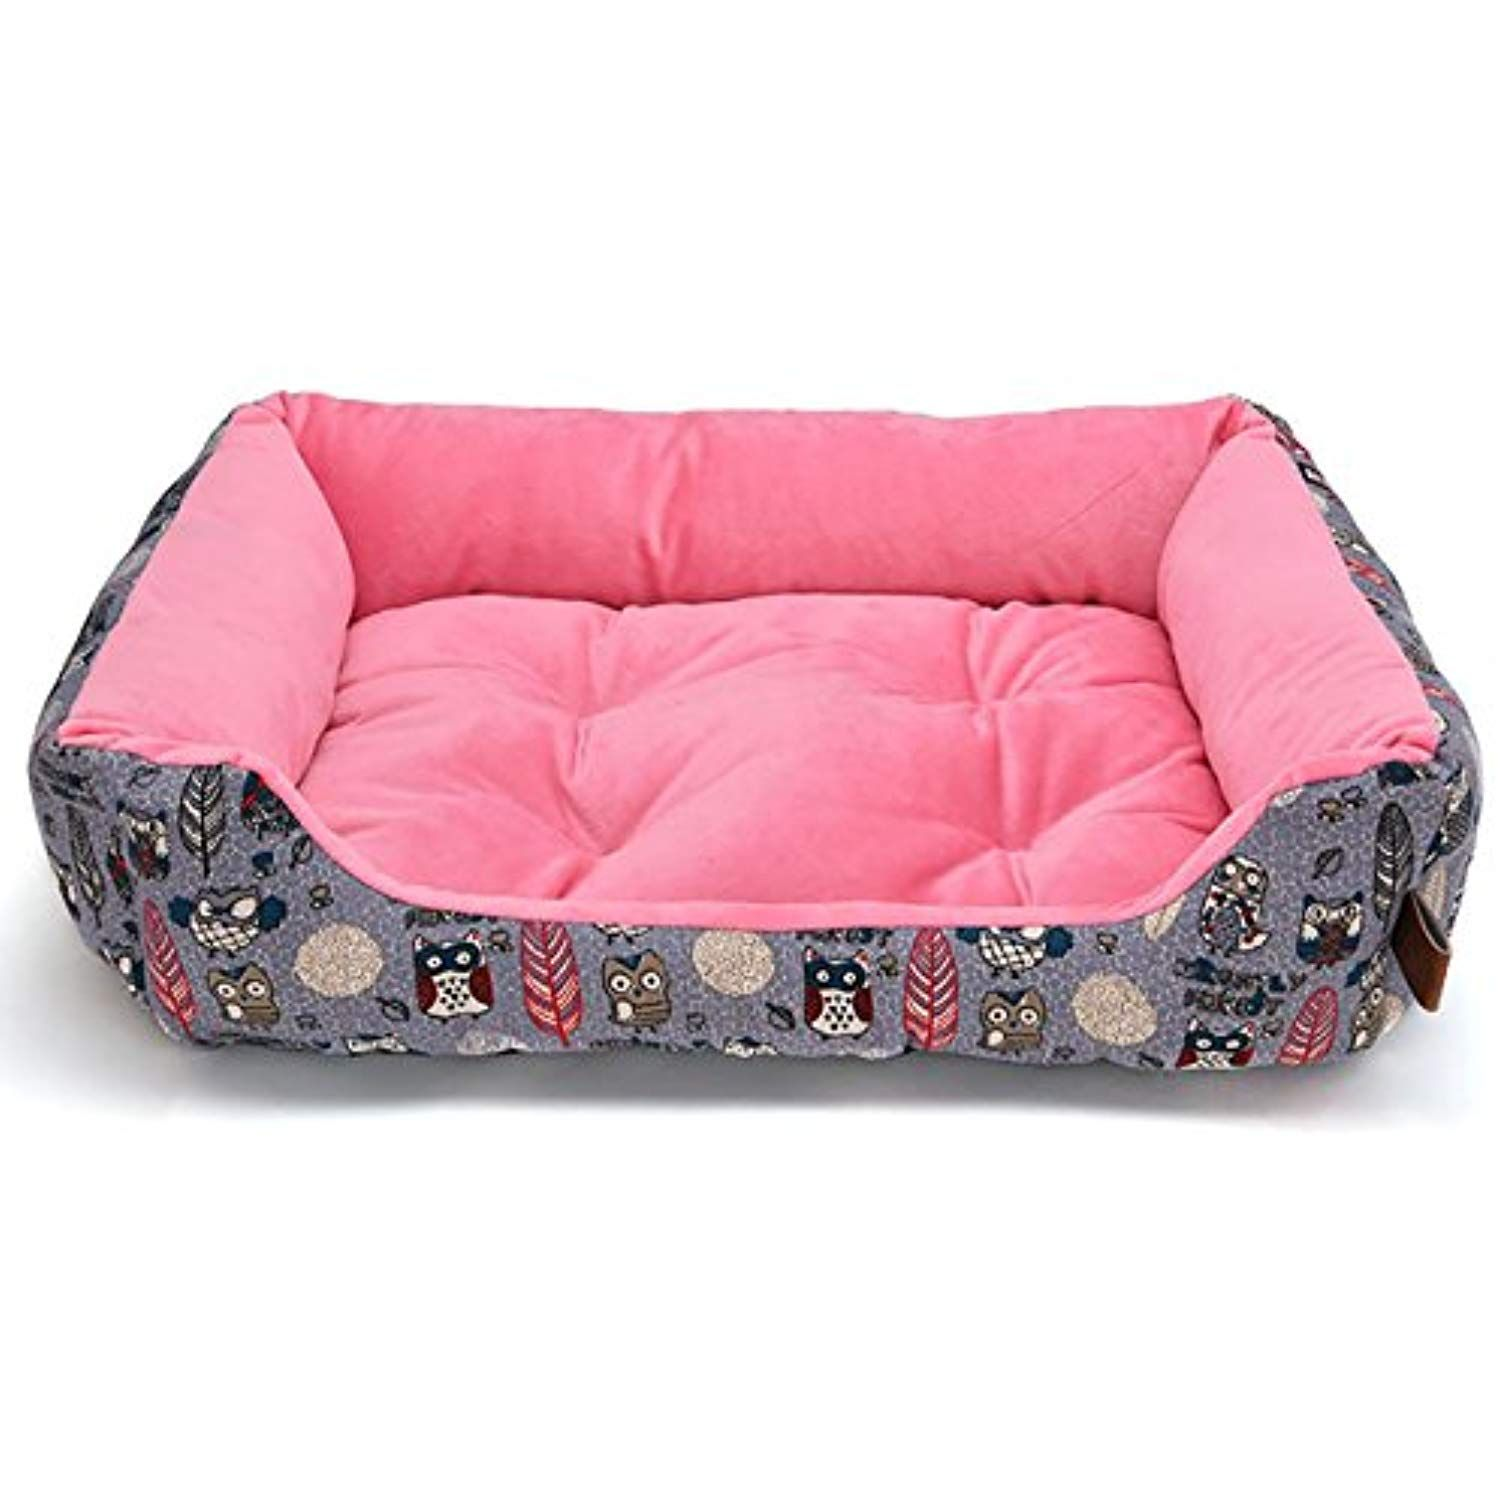 Uheng Deluxe Bolster Pet Bed for Dogs cats Dog bed